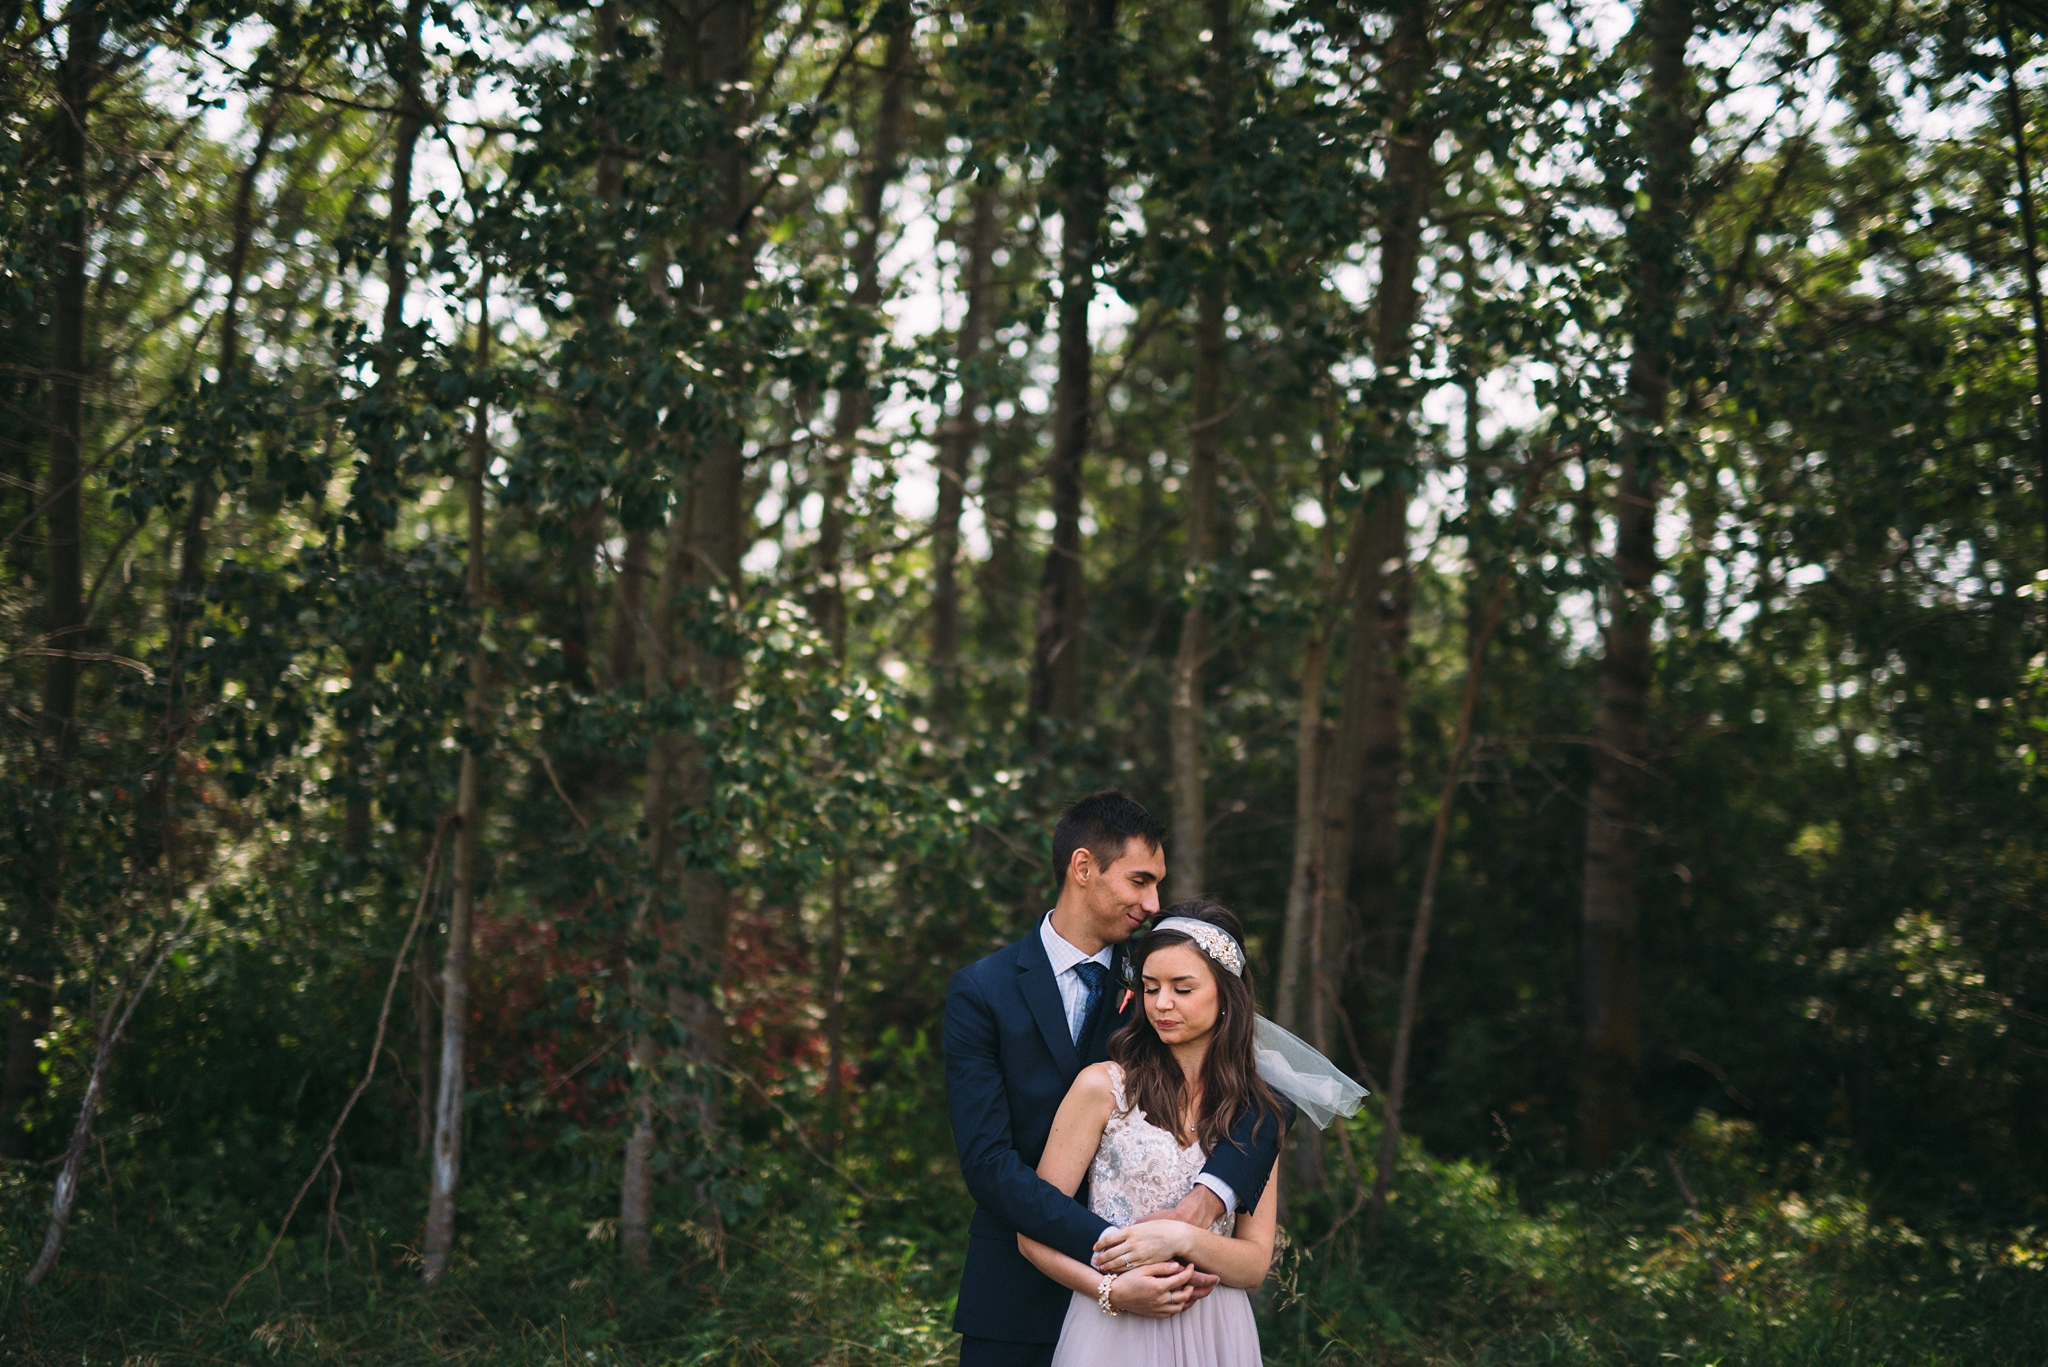 kaihla_tonai_intimate_wedding_elopement_photographer_2697